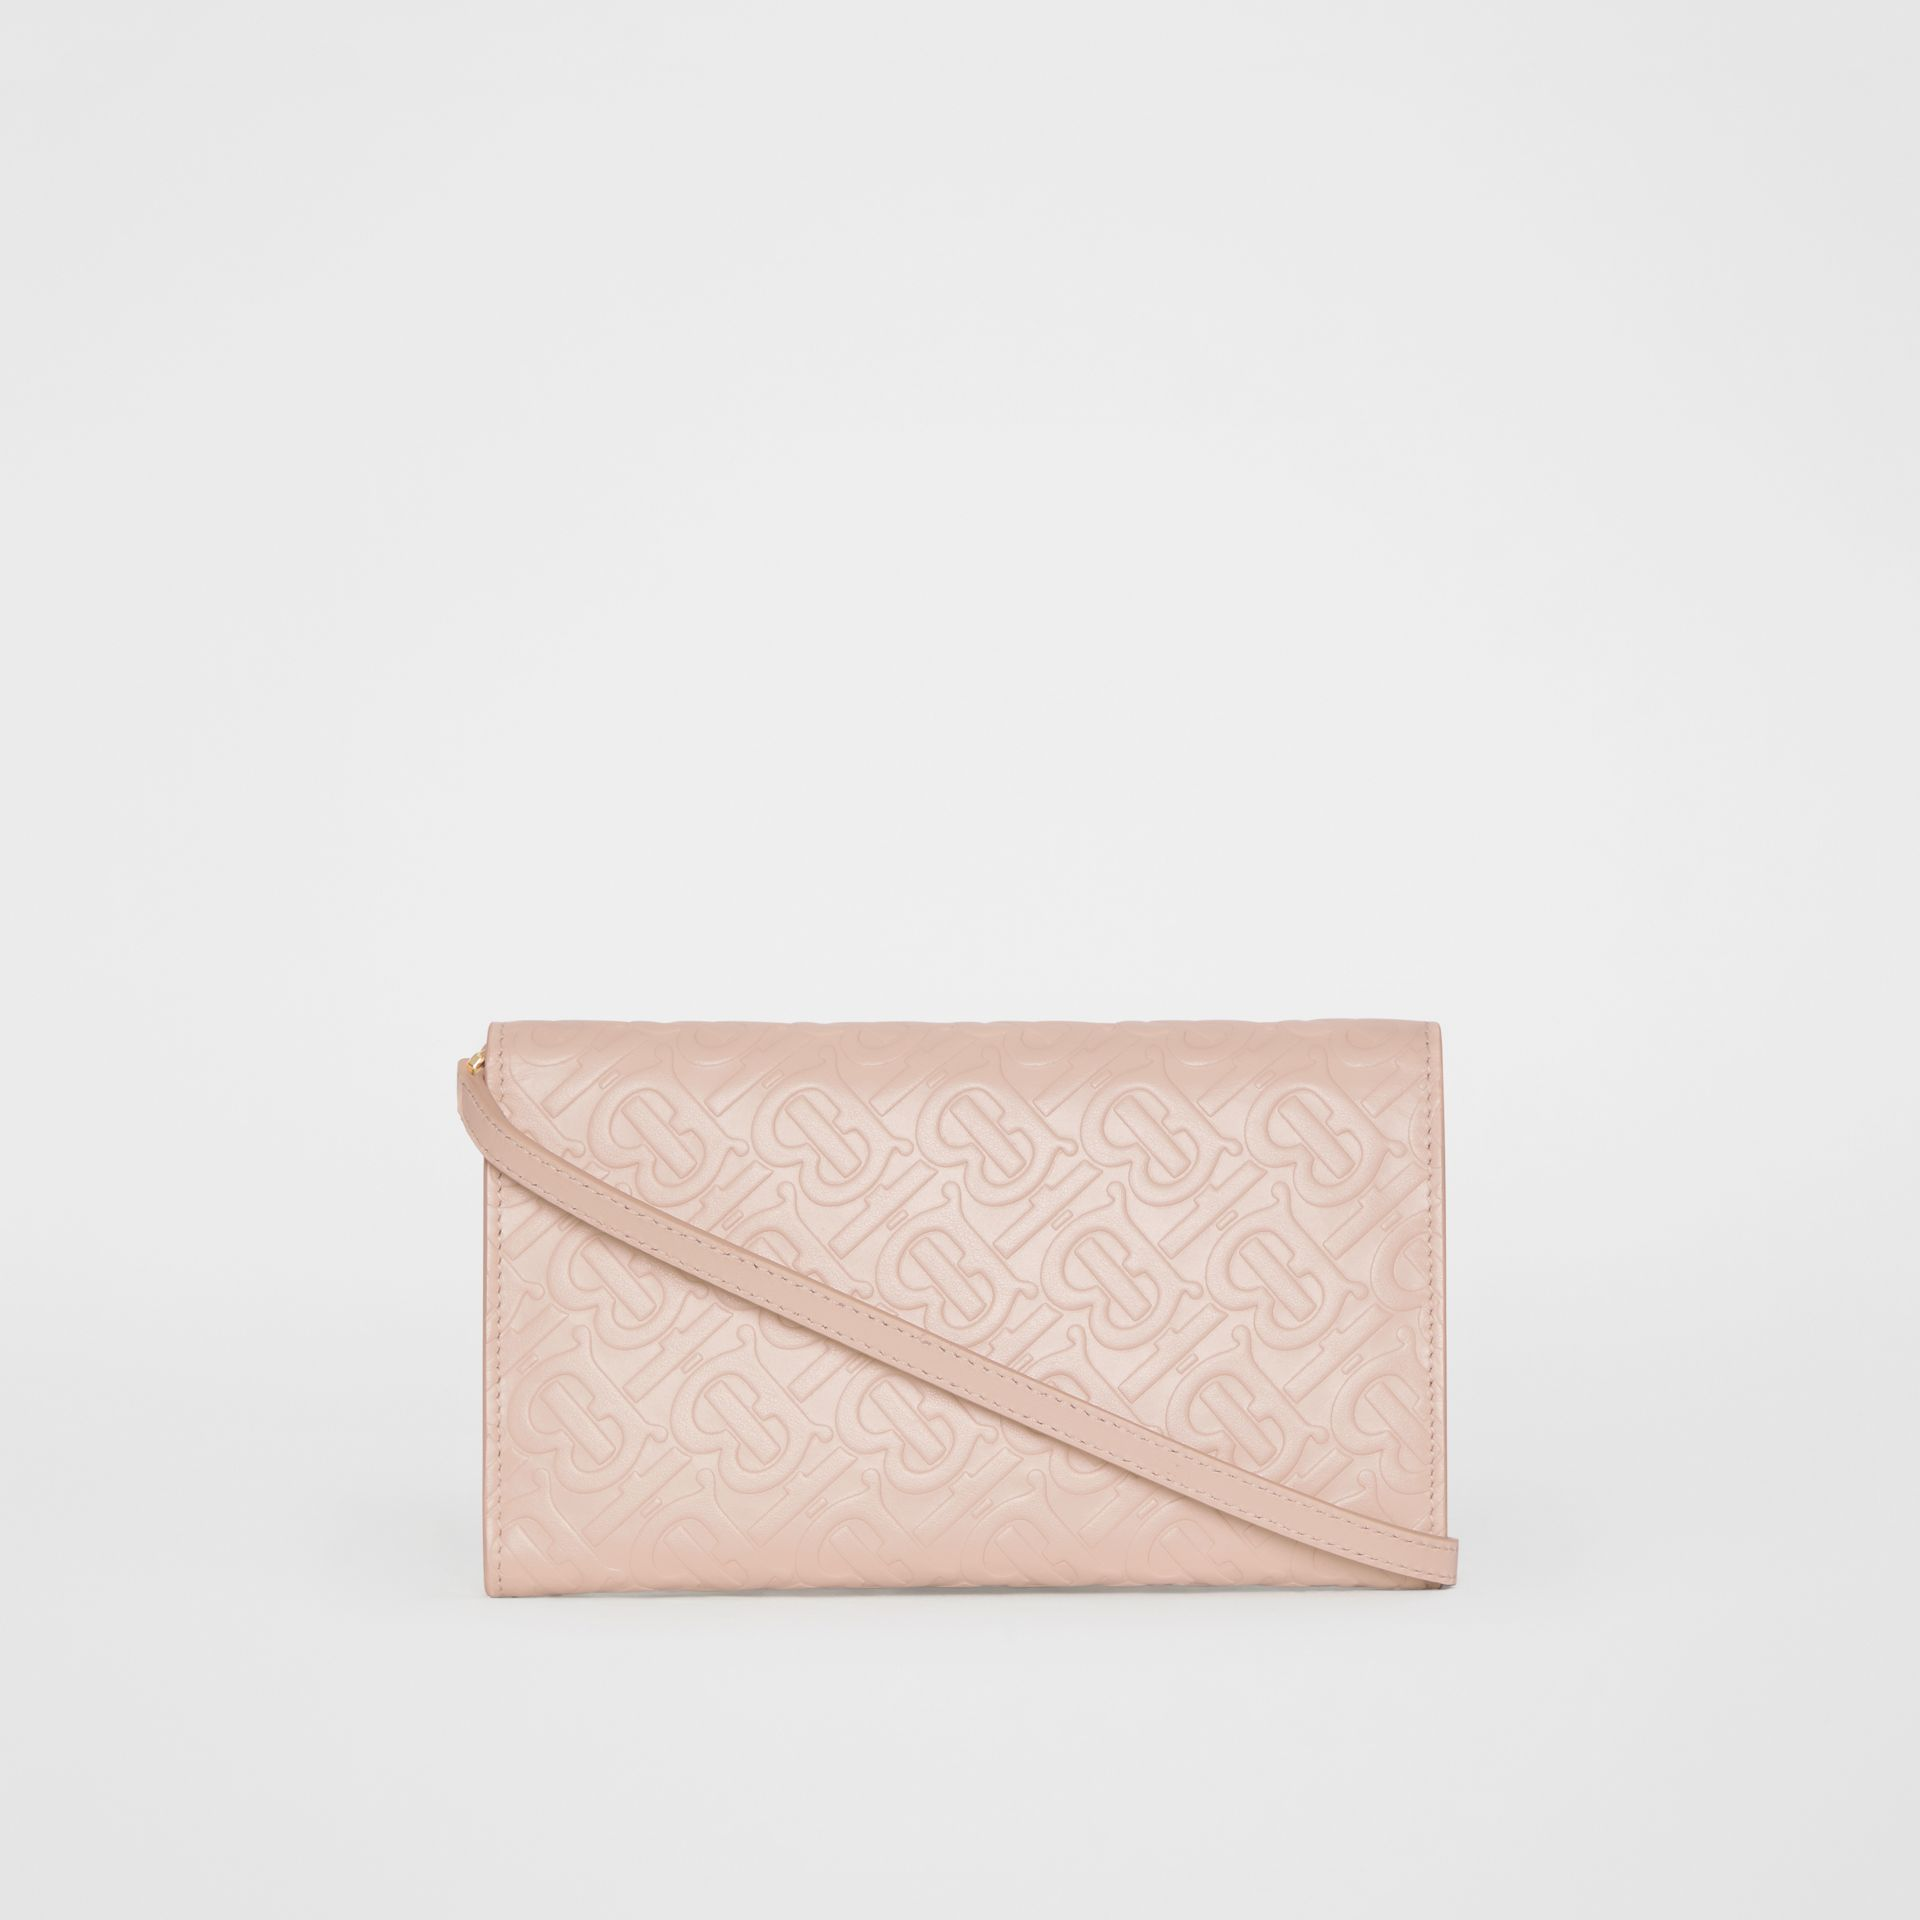 Monogram Leather Wallet with Detachable Strap in Rose Beige - Women | Burberry Singapore - gallery image 8